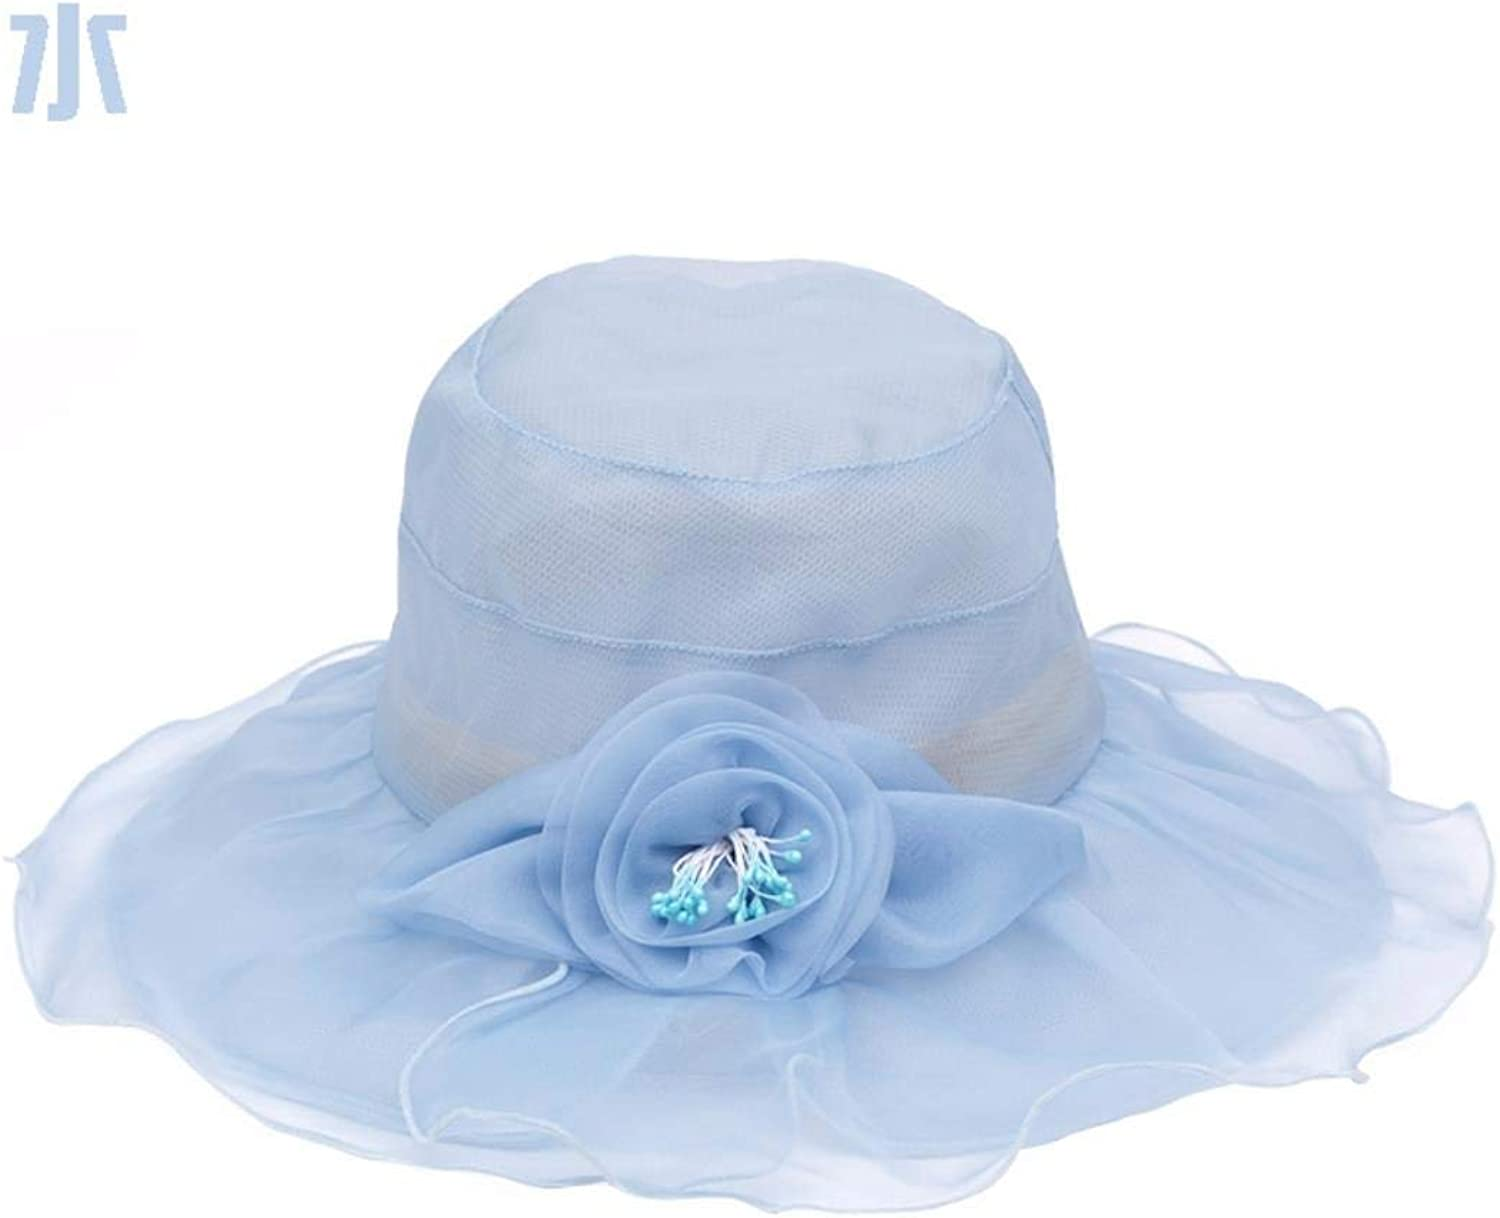 Chuiqingnet Elegant and Stylish Girl Visor Breathable cap in the summer, cool in the summer of silk hats with the new